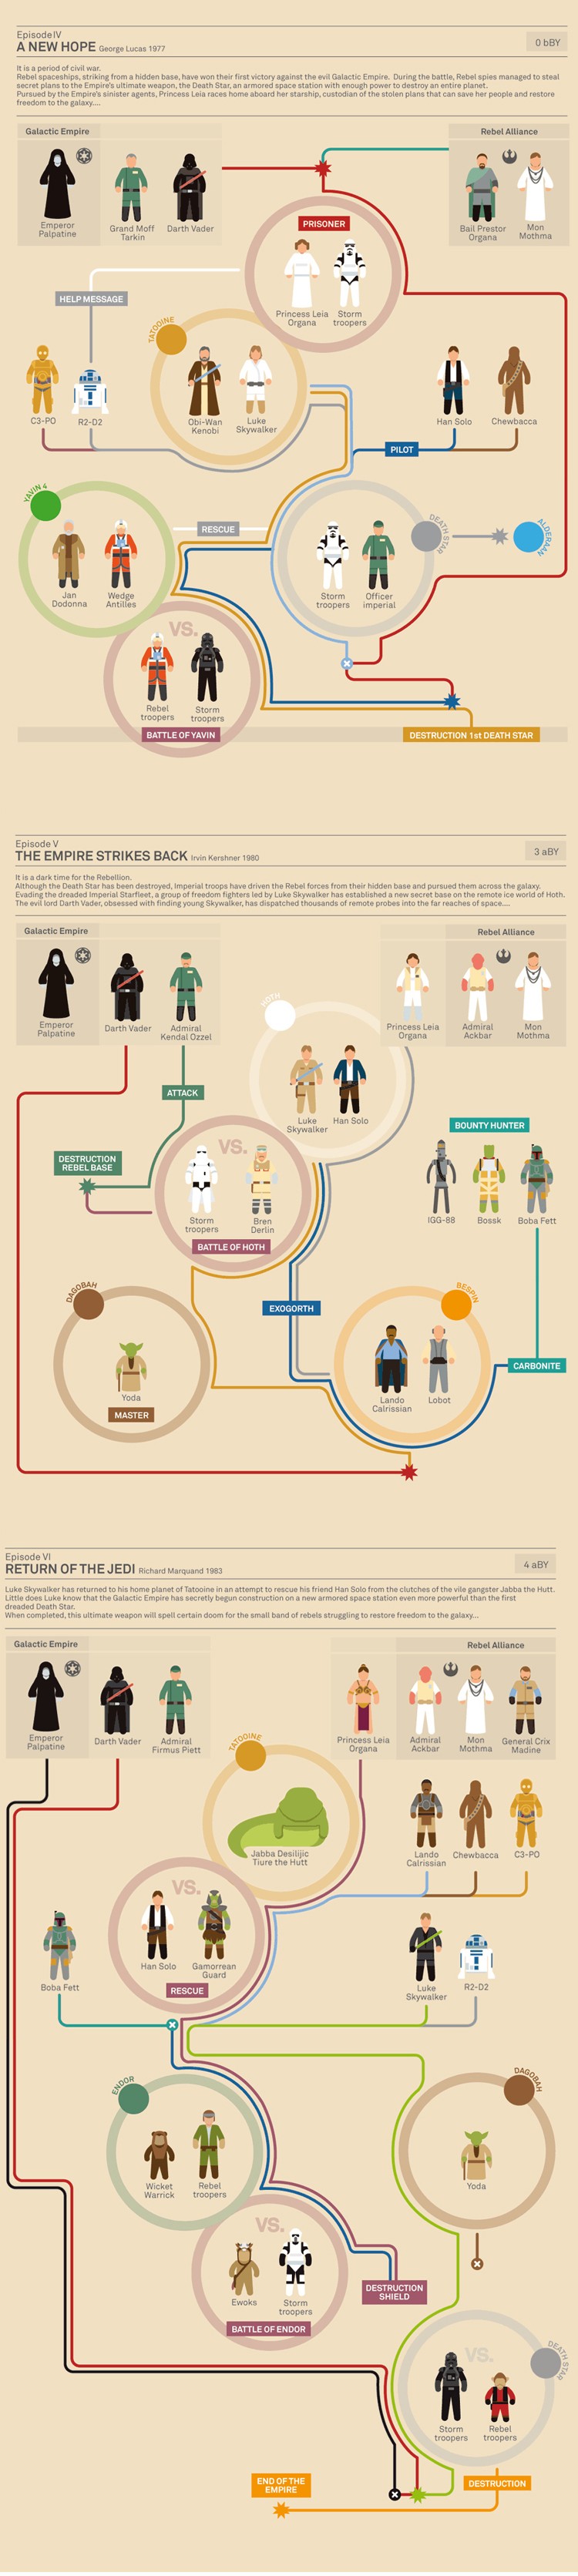 Star Wars Infographic Episode 4 5 6